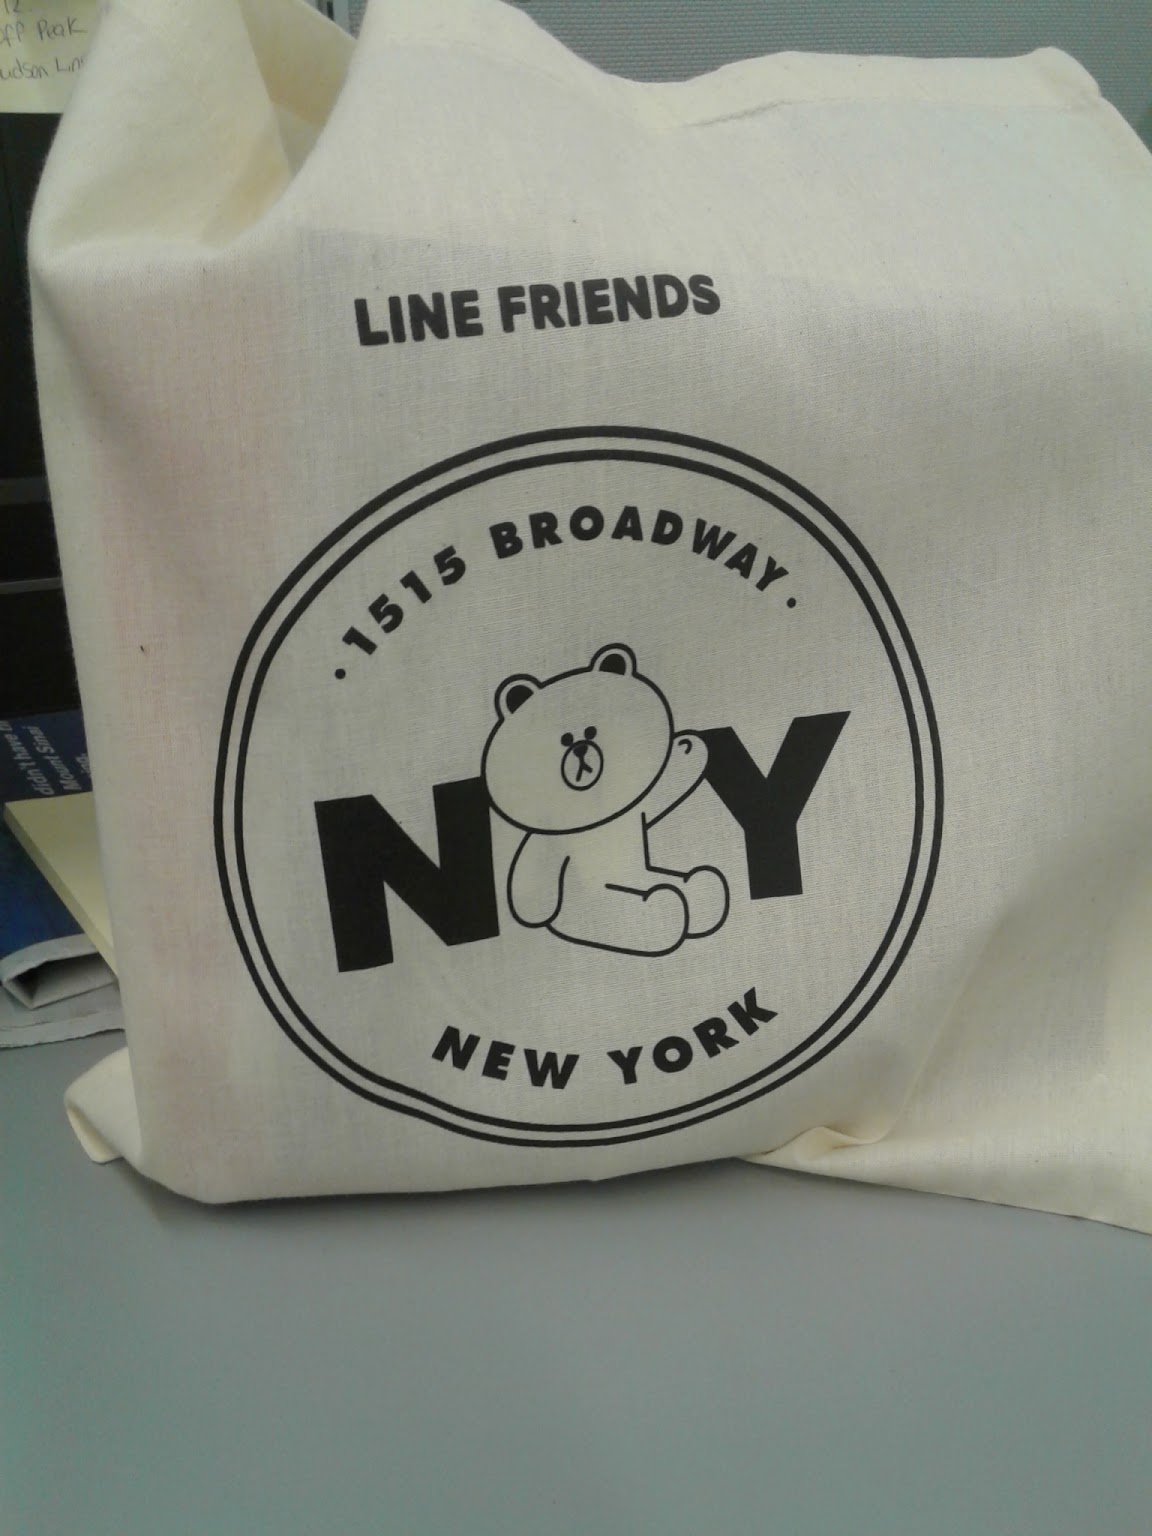 Local guides connect new york city perk a gift from for Gifts for new yorkers